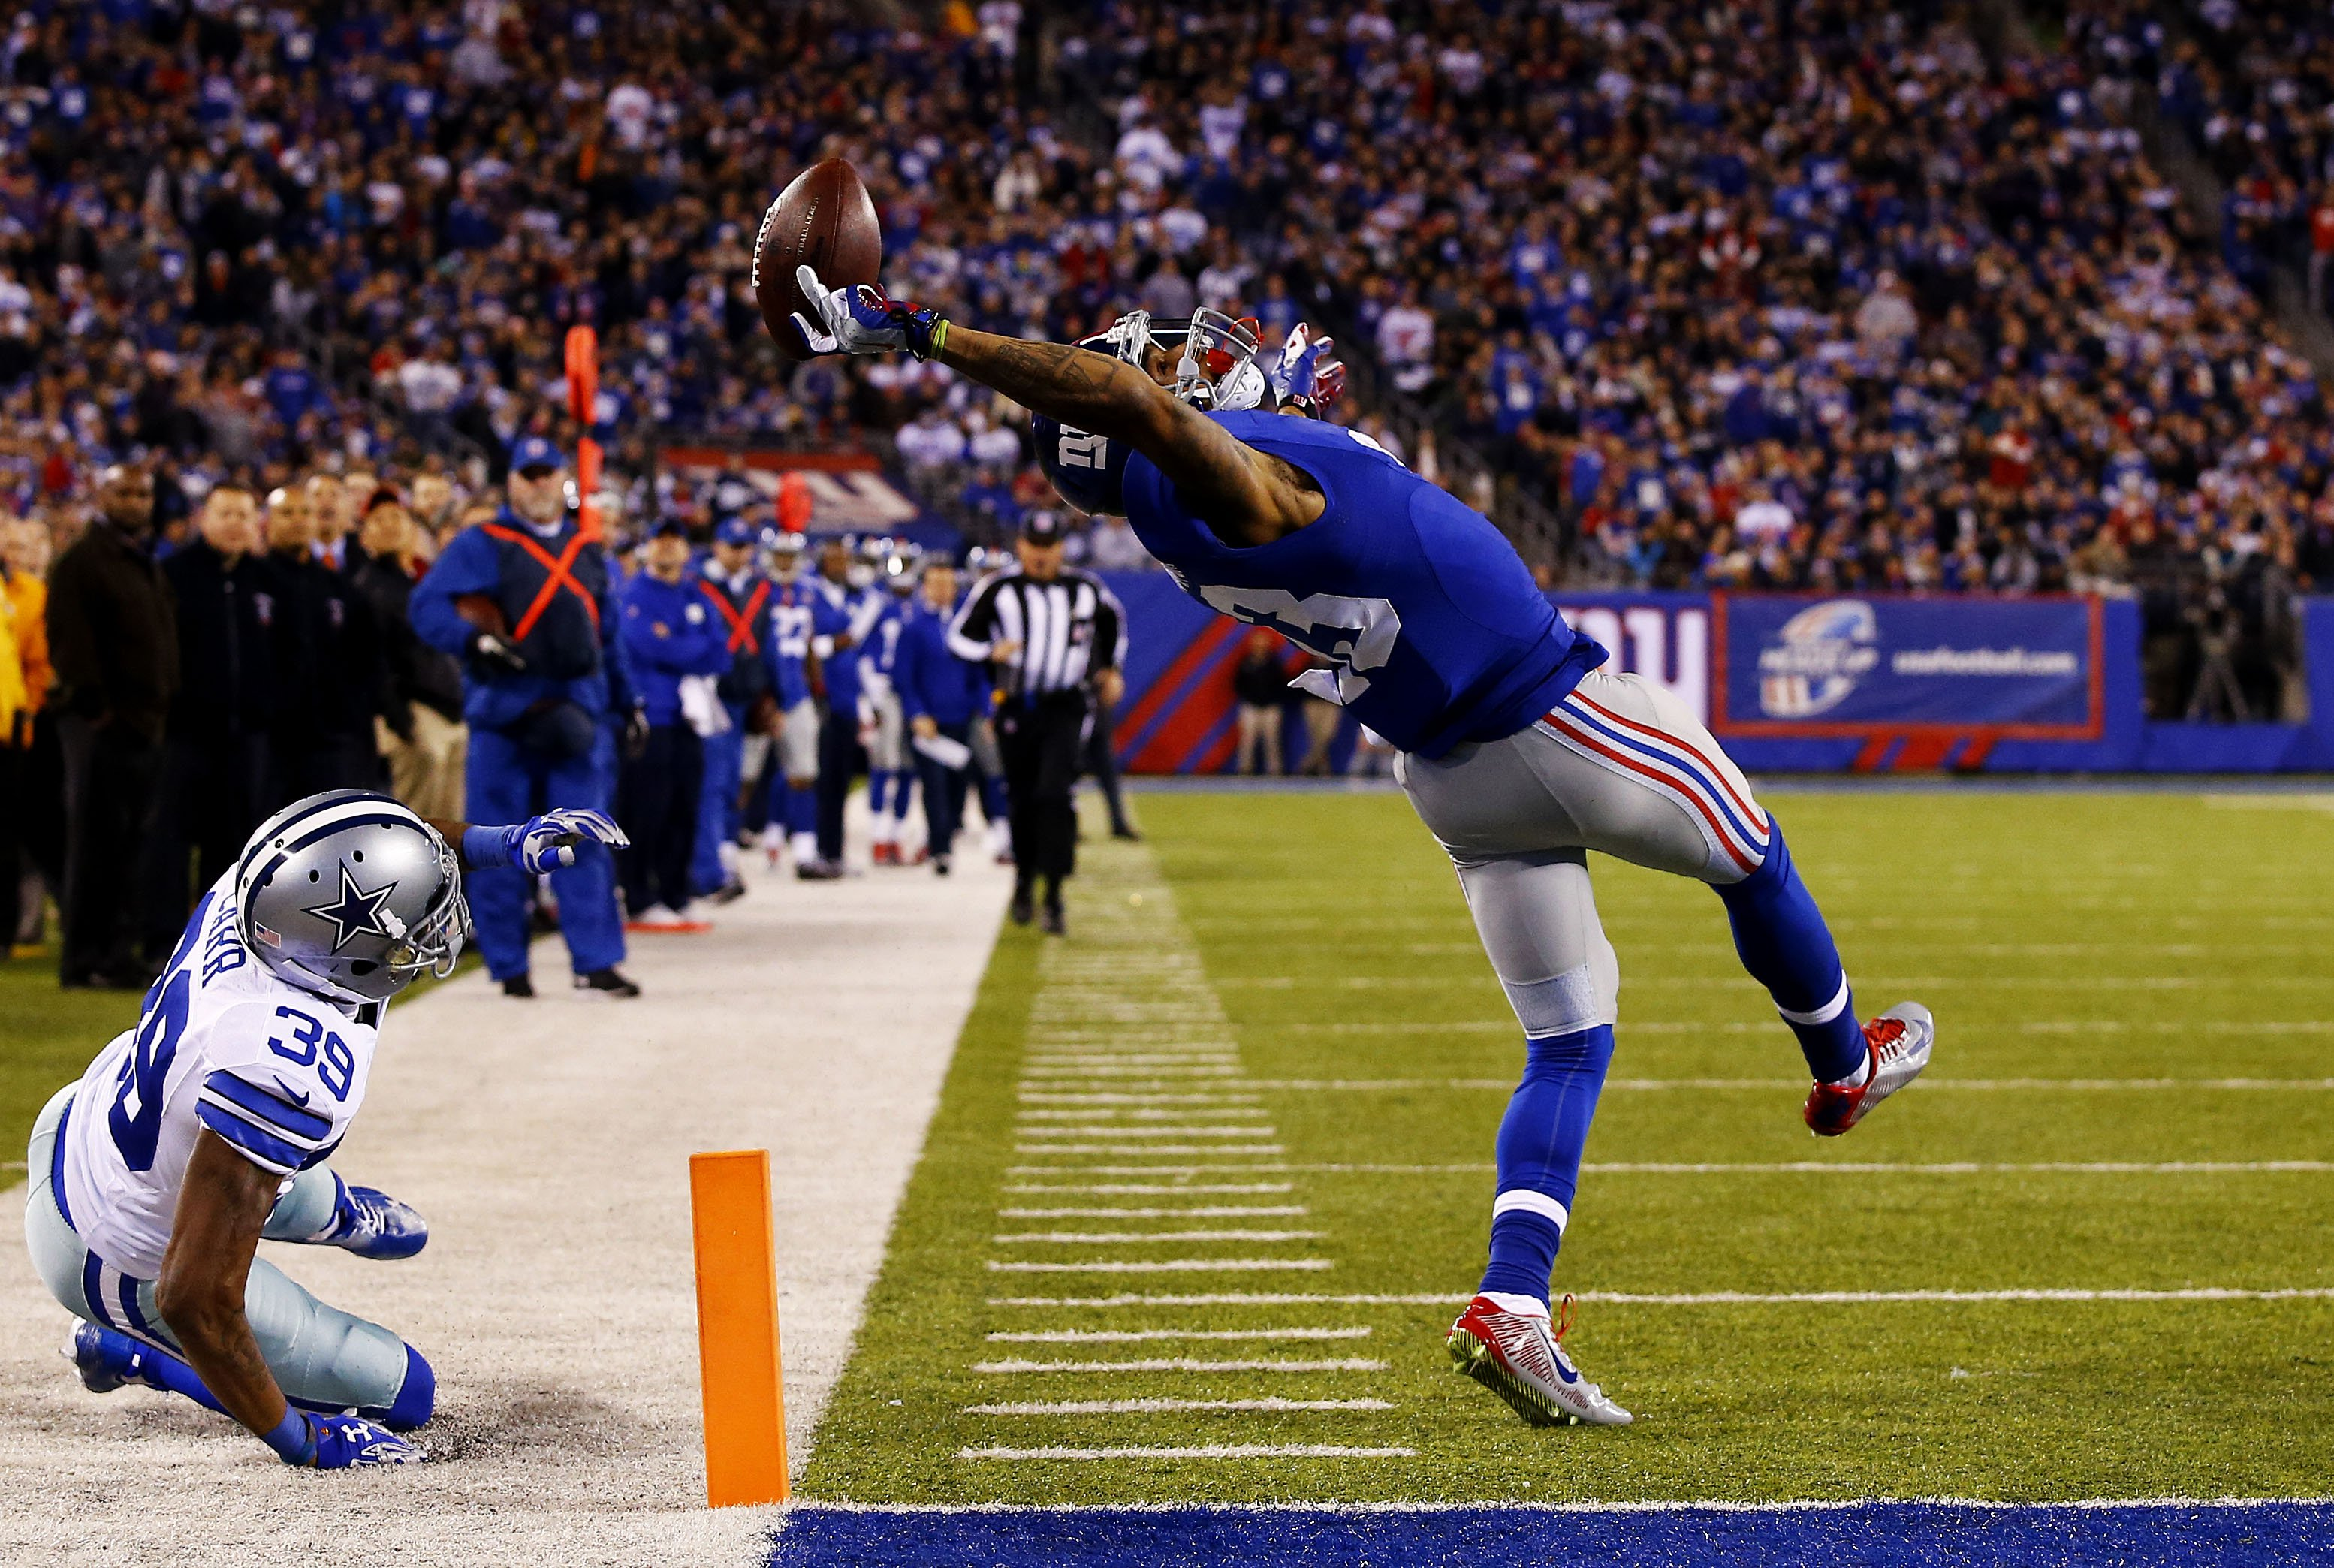 Odell Beckham #13 of the New York Giants scores a touchdown in the second quarter against the Dallas Cowboys at MetLife Stadium on Nov. 23, 2014 in East Rutherford, N.J.